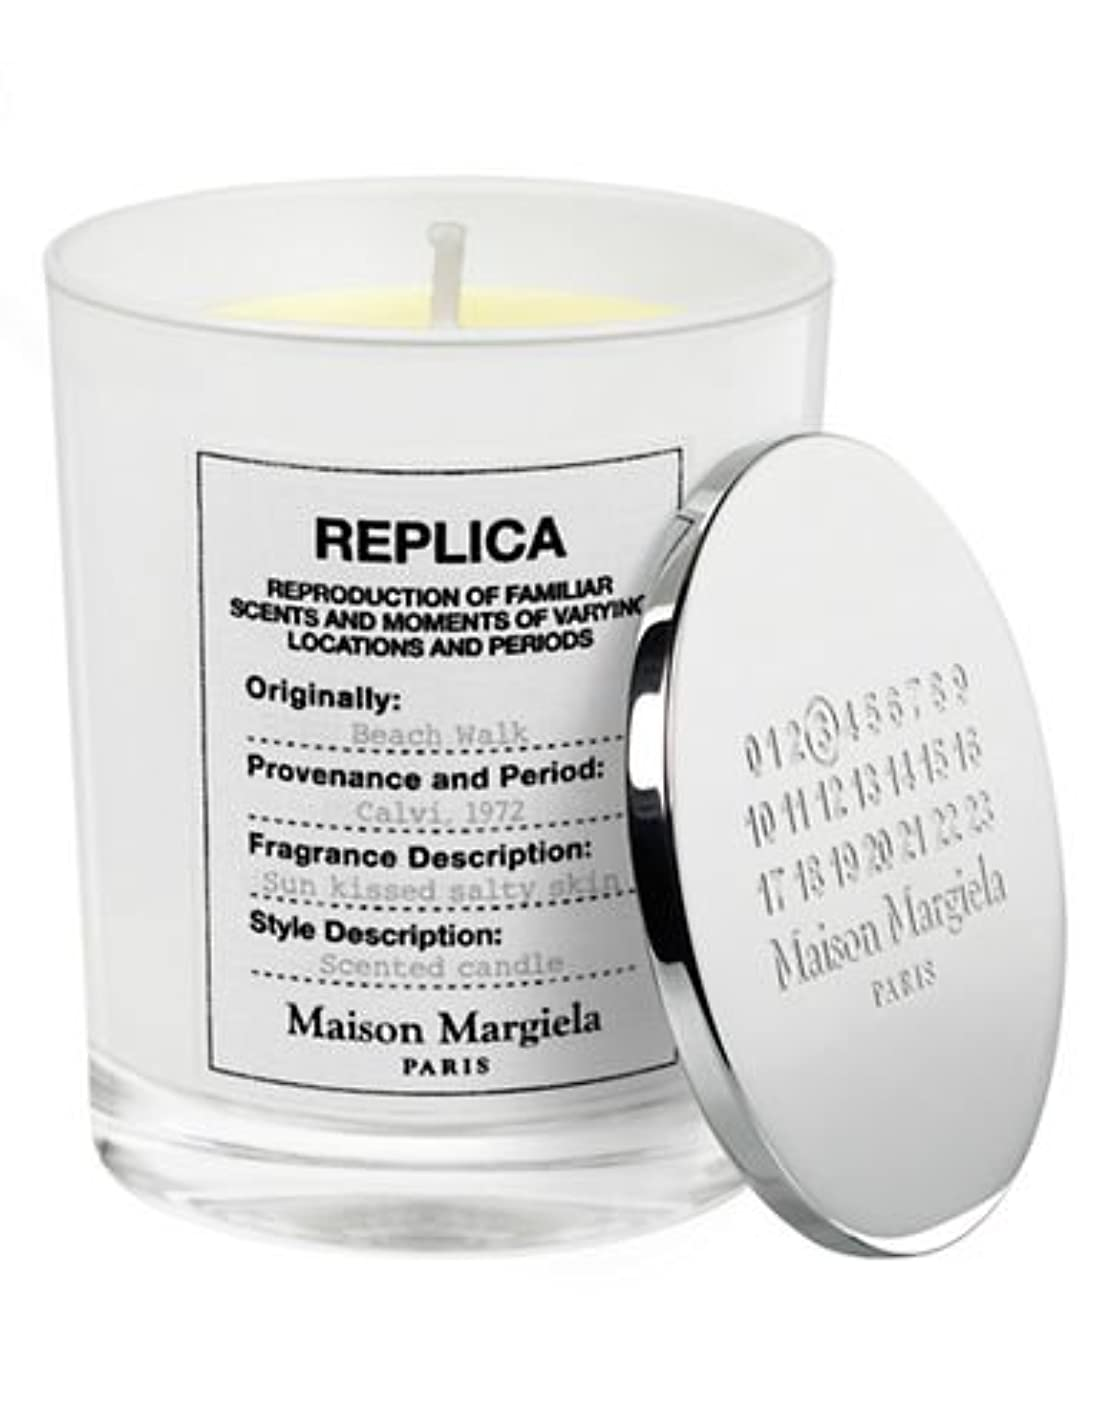 繕うノイズ暴露する( 1 ) Maison Margiela 'レプリカ' Beach Walk Scented Candle 5.82oz